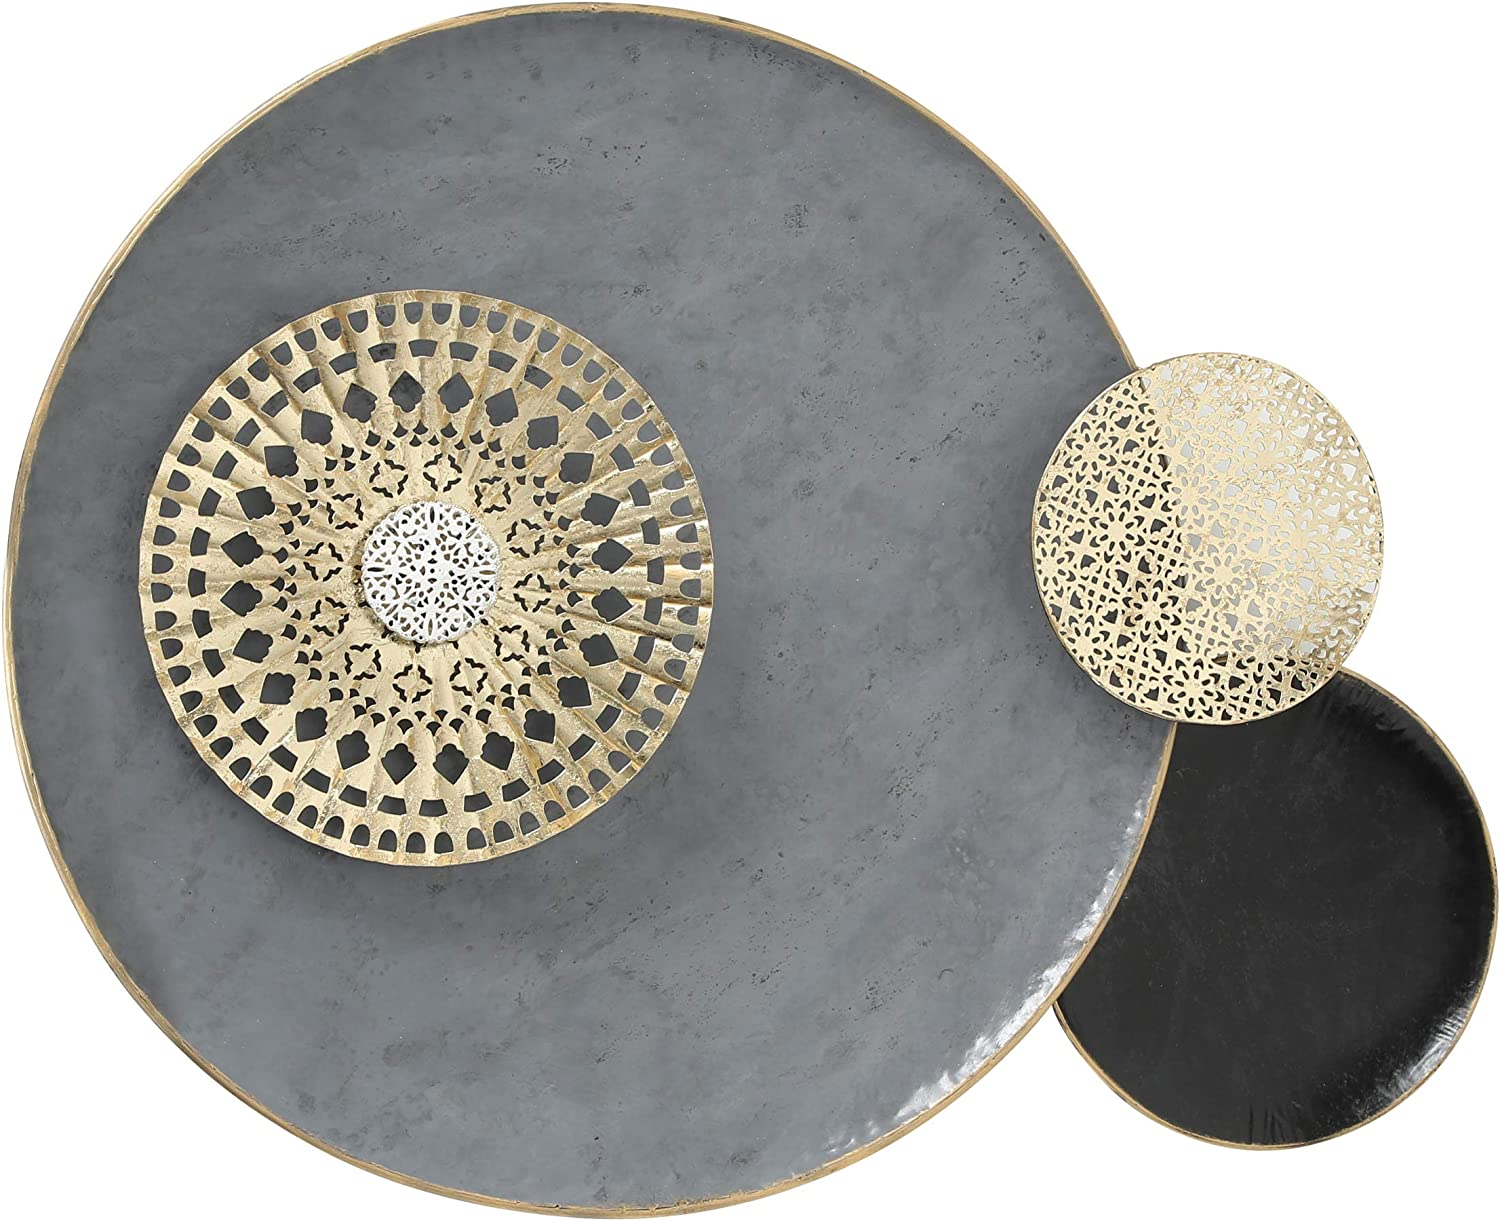 Modernist Floating Roundels, Metal Wall Sculpture, Decor, Gold Gilt Accents, Glossy Gray and Black, Metallic Lacy Pattern Details, Distressed Finish, Iron, 39.25 W x 29.5 H Inches